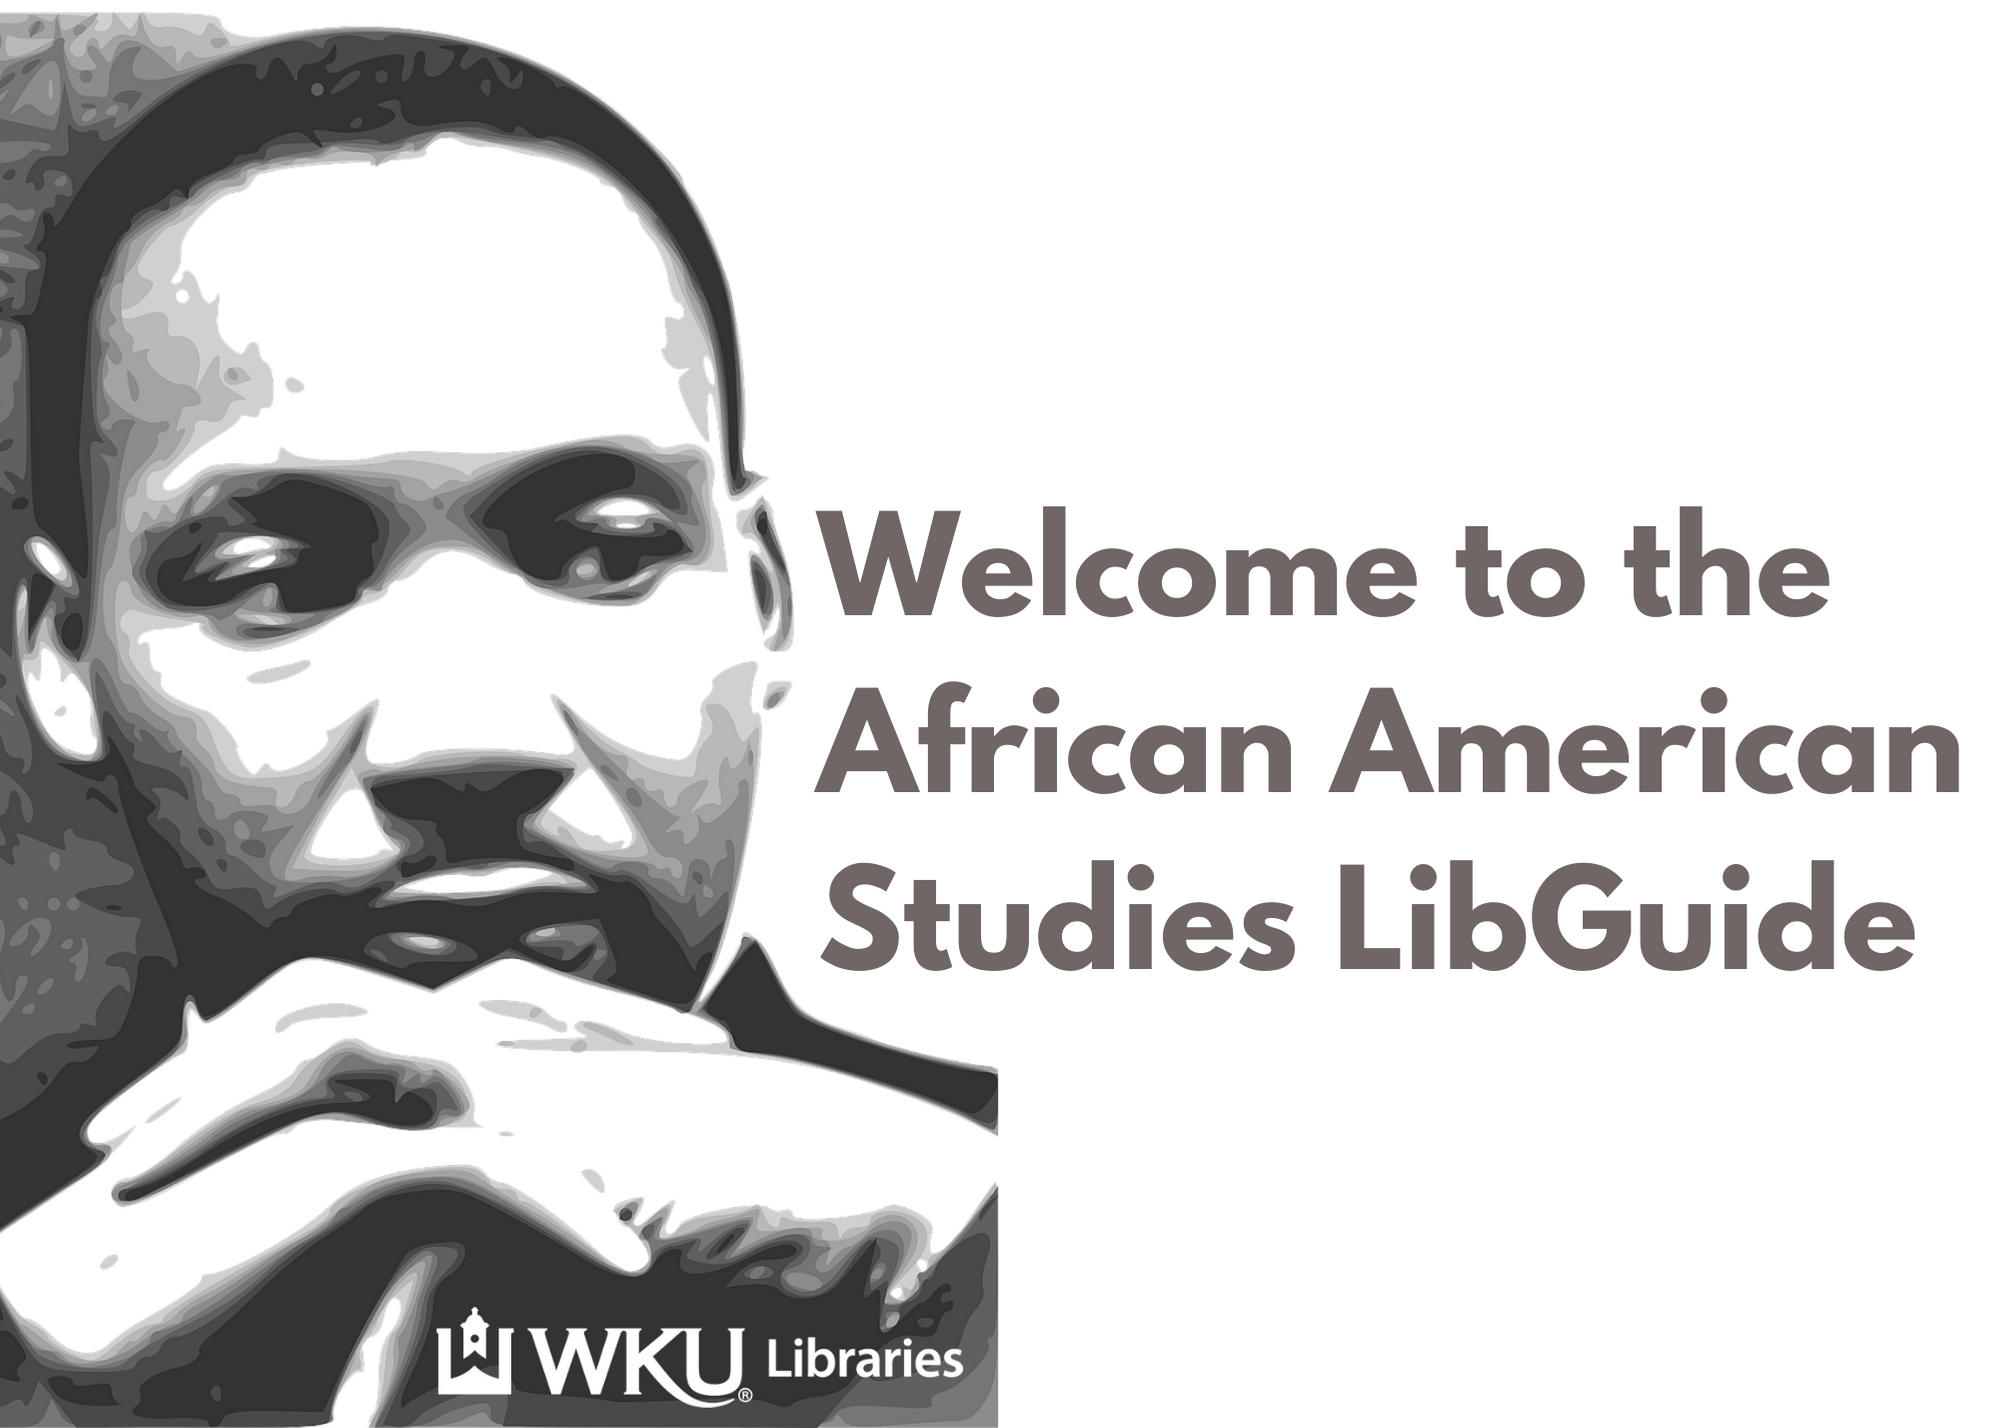 Welcome to the African American Studies LibGuide: image represents  Martin Luther King, Jr. folded hands together next to his chine as he looks to the right in a very thoughtful facial gesture.